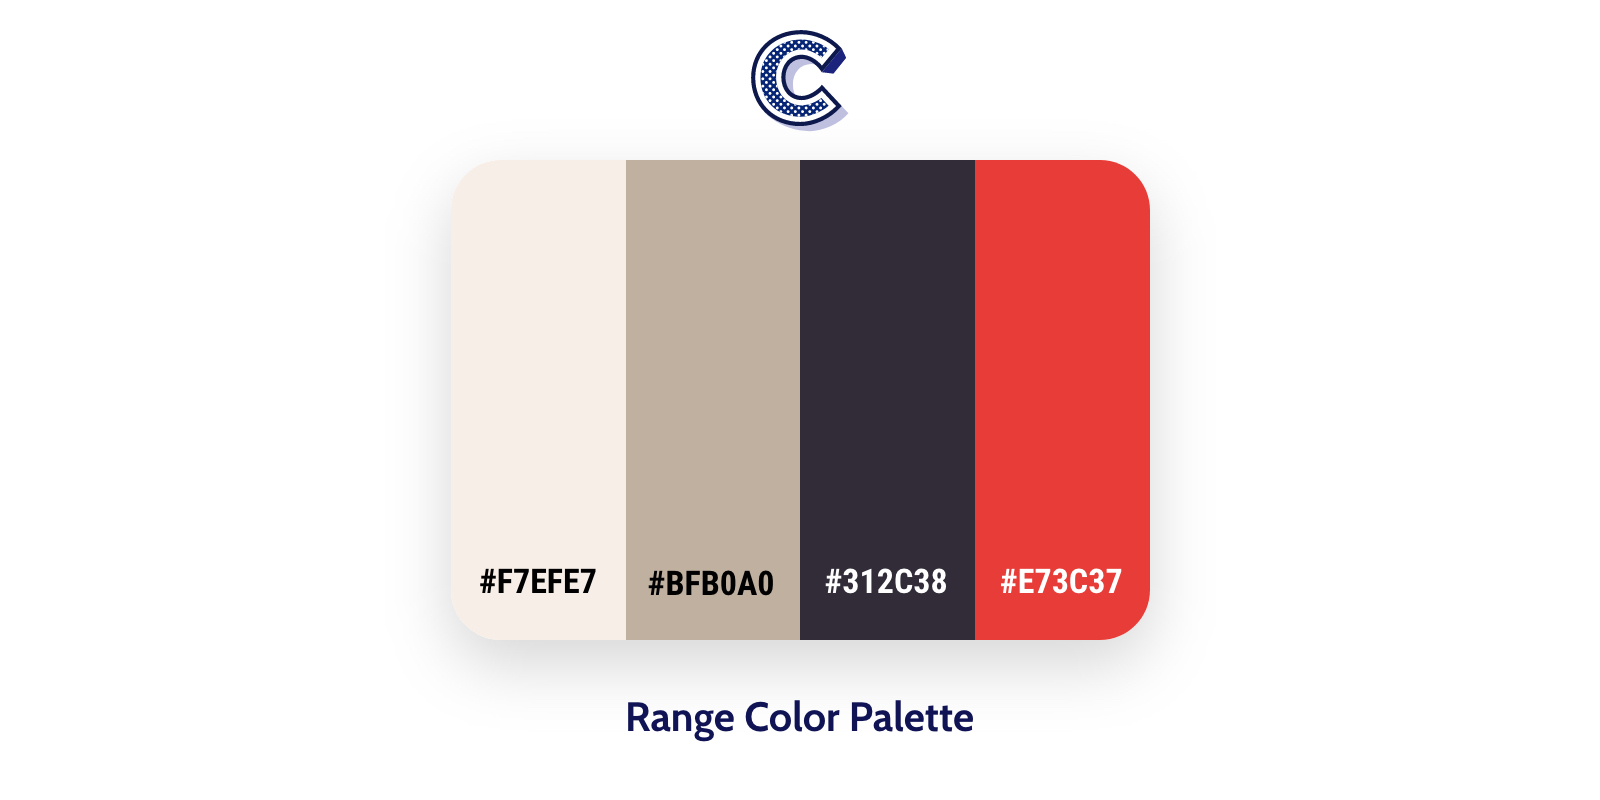 the featured image of range color palette